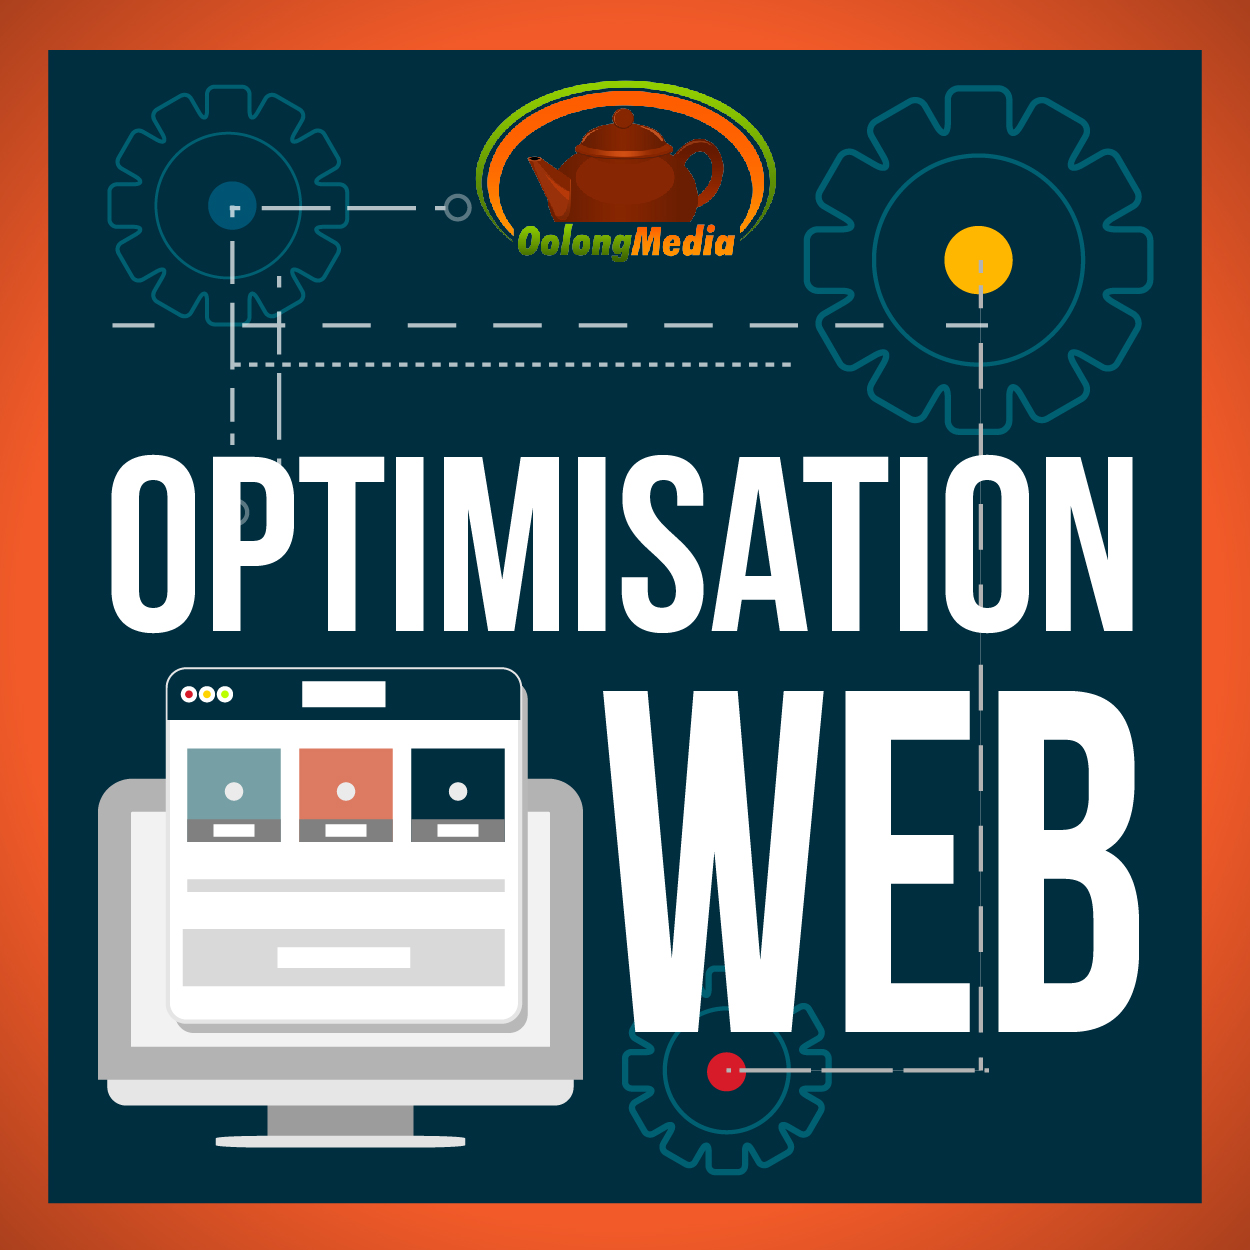 OPTIMISATION WEB Analyse + Strategie + Referencement + Visibilite + Contenu + Design + Conversion